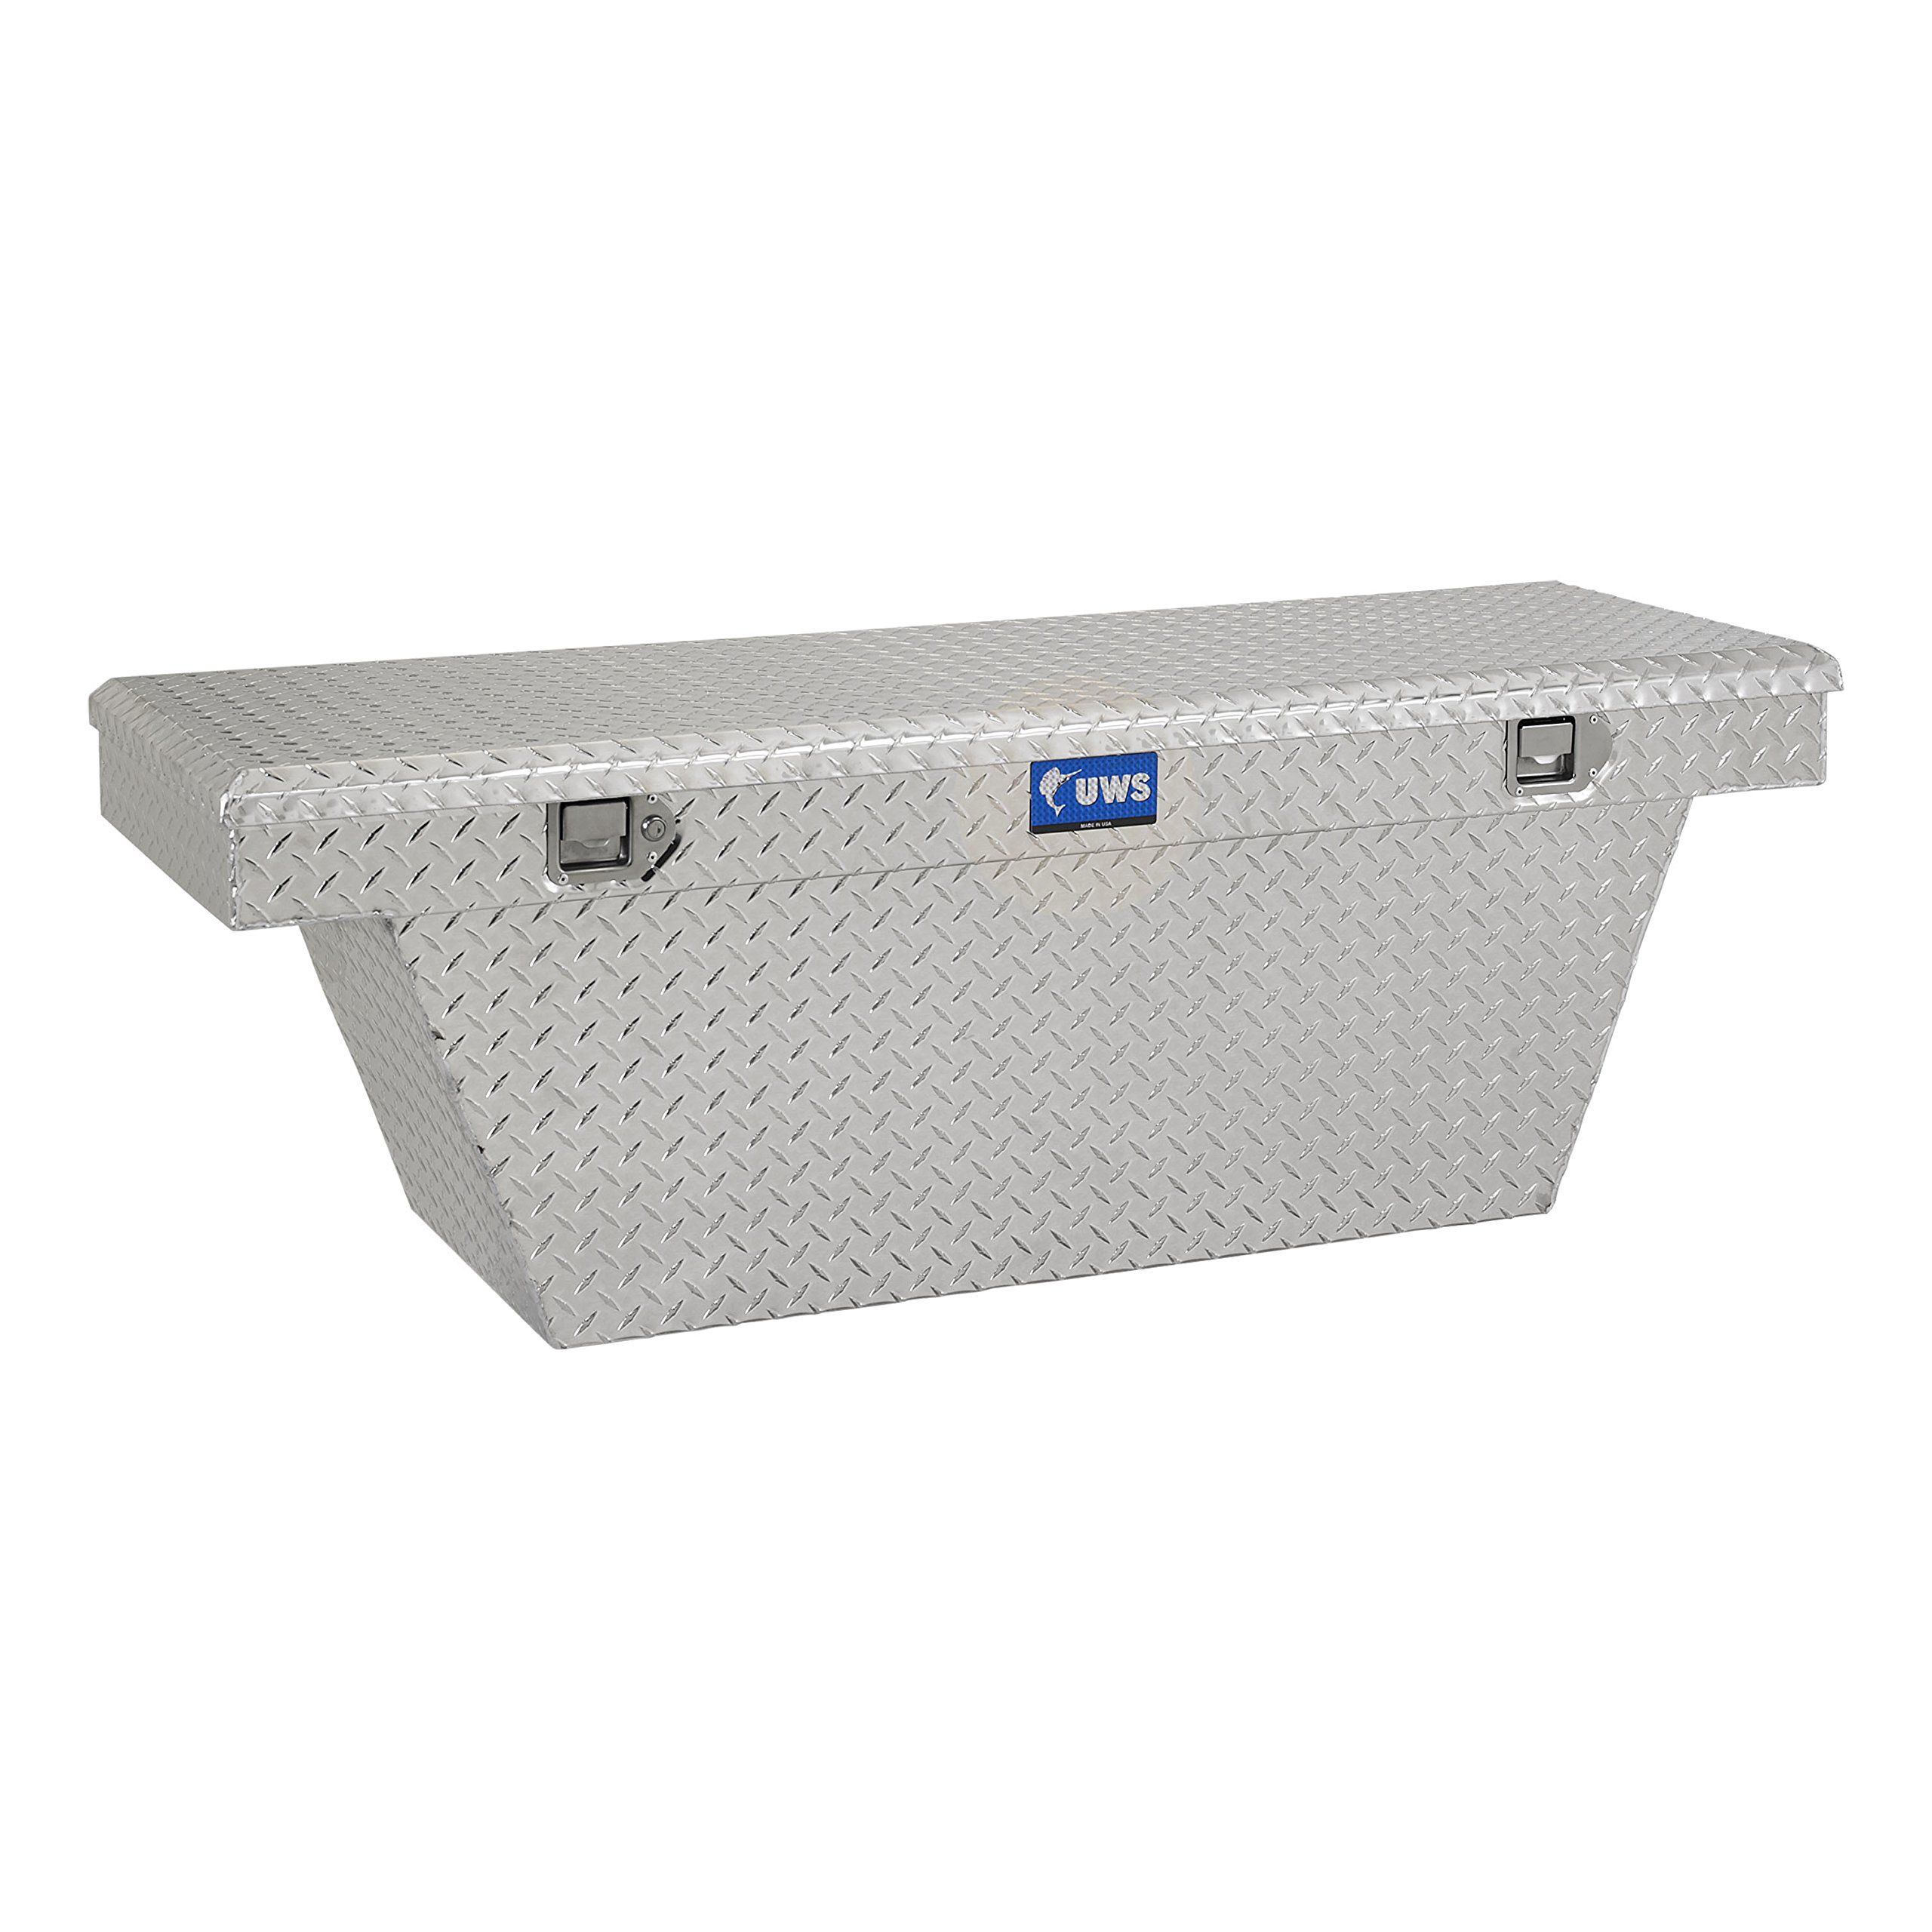 UWS EC Deep Angled Crossover Truck Tool Box For more